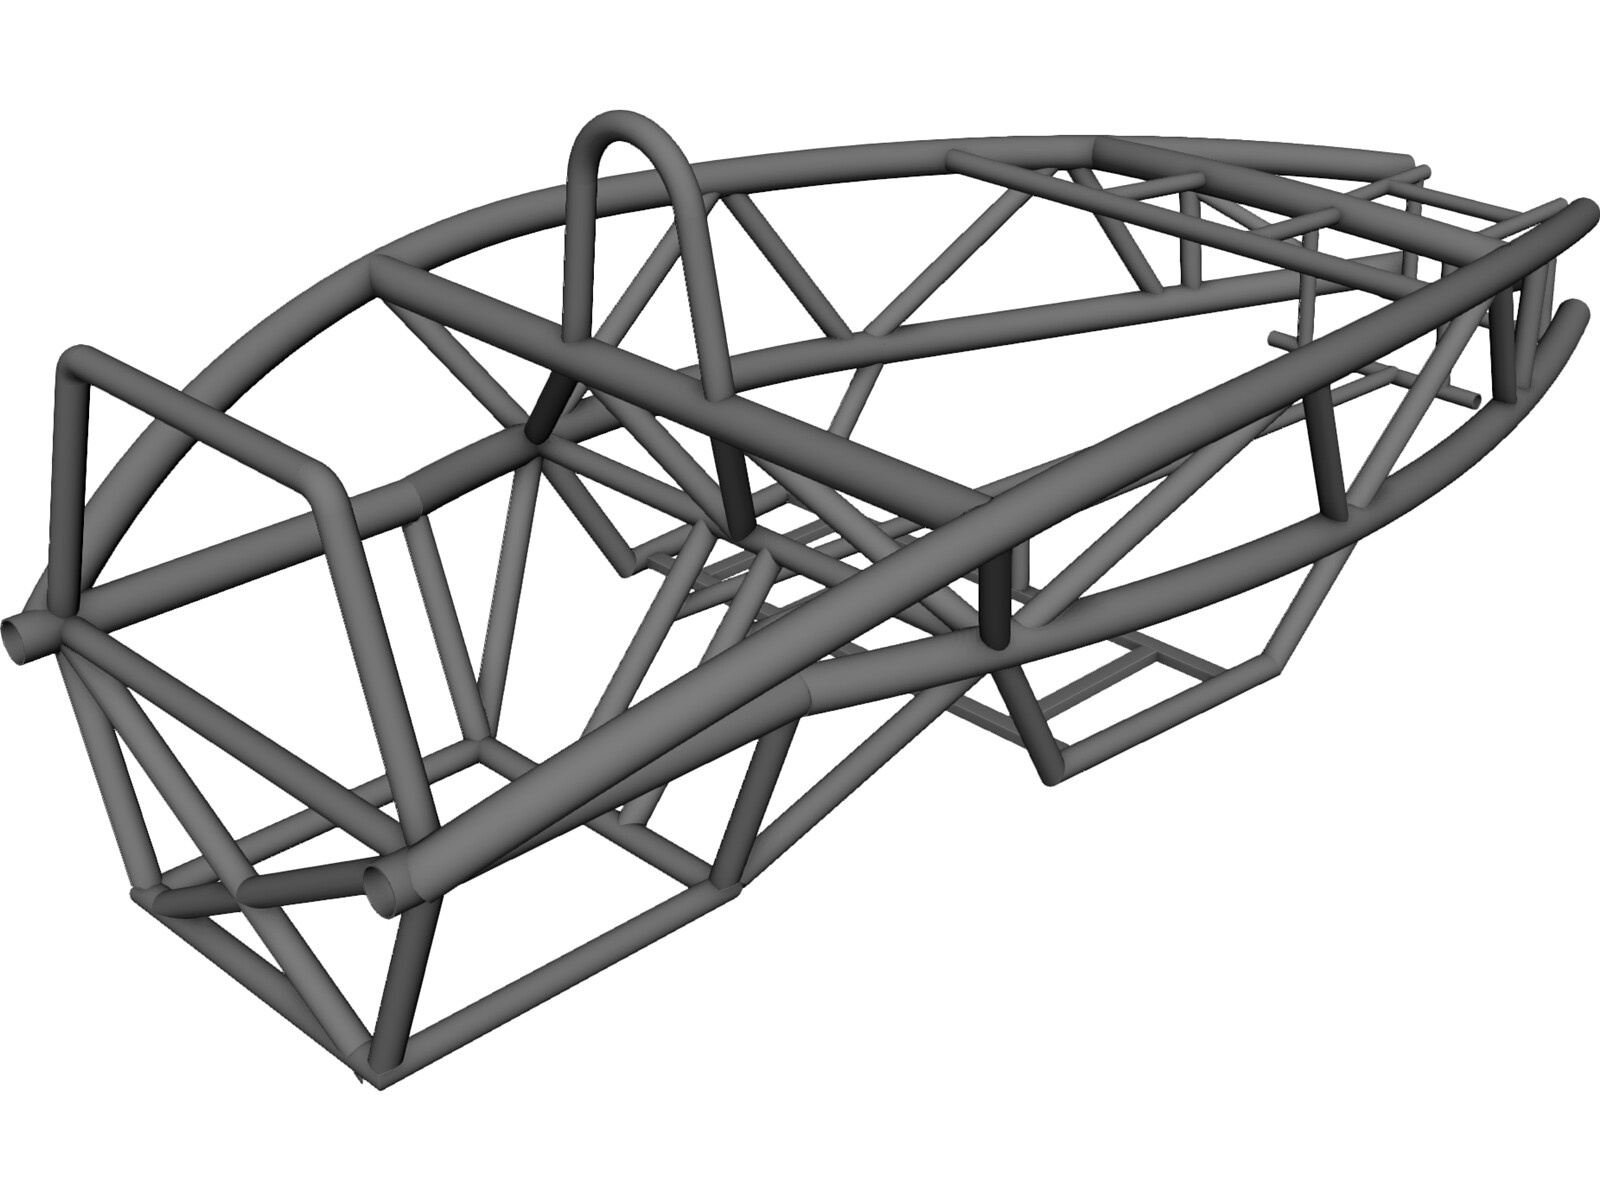 Ariel Atom 2 Chassis 3D Model